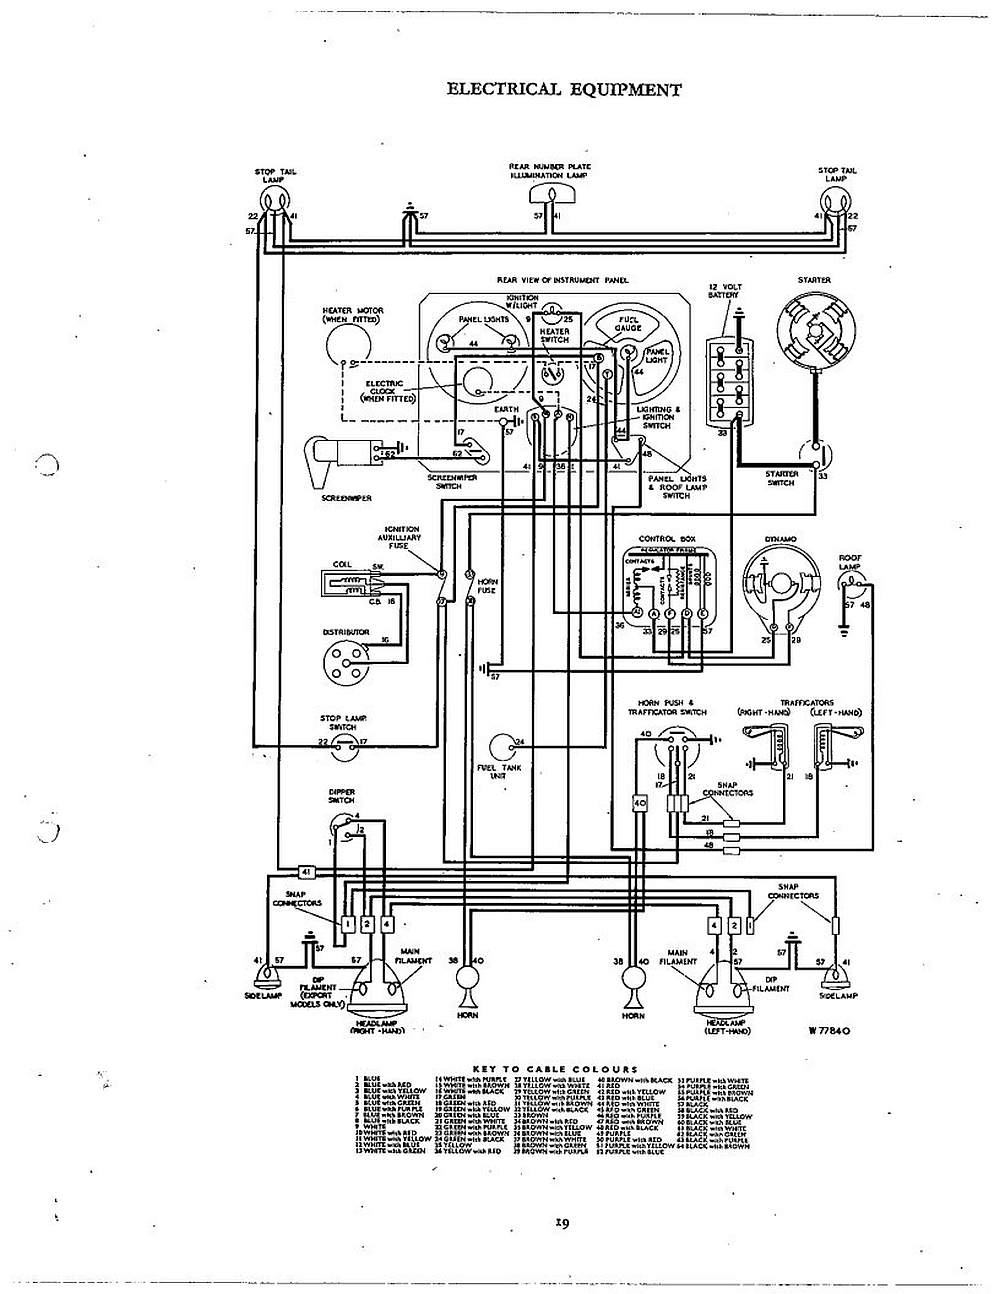 Tr4 Wiring Diagram - Free Download Wiring Diagram